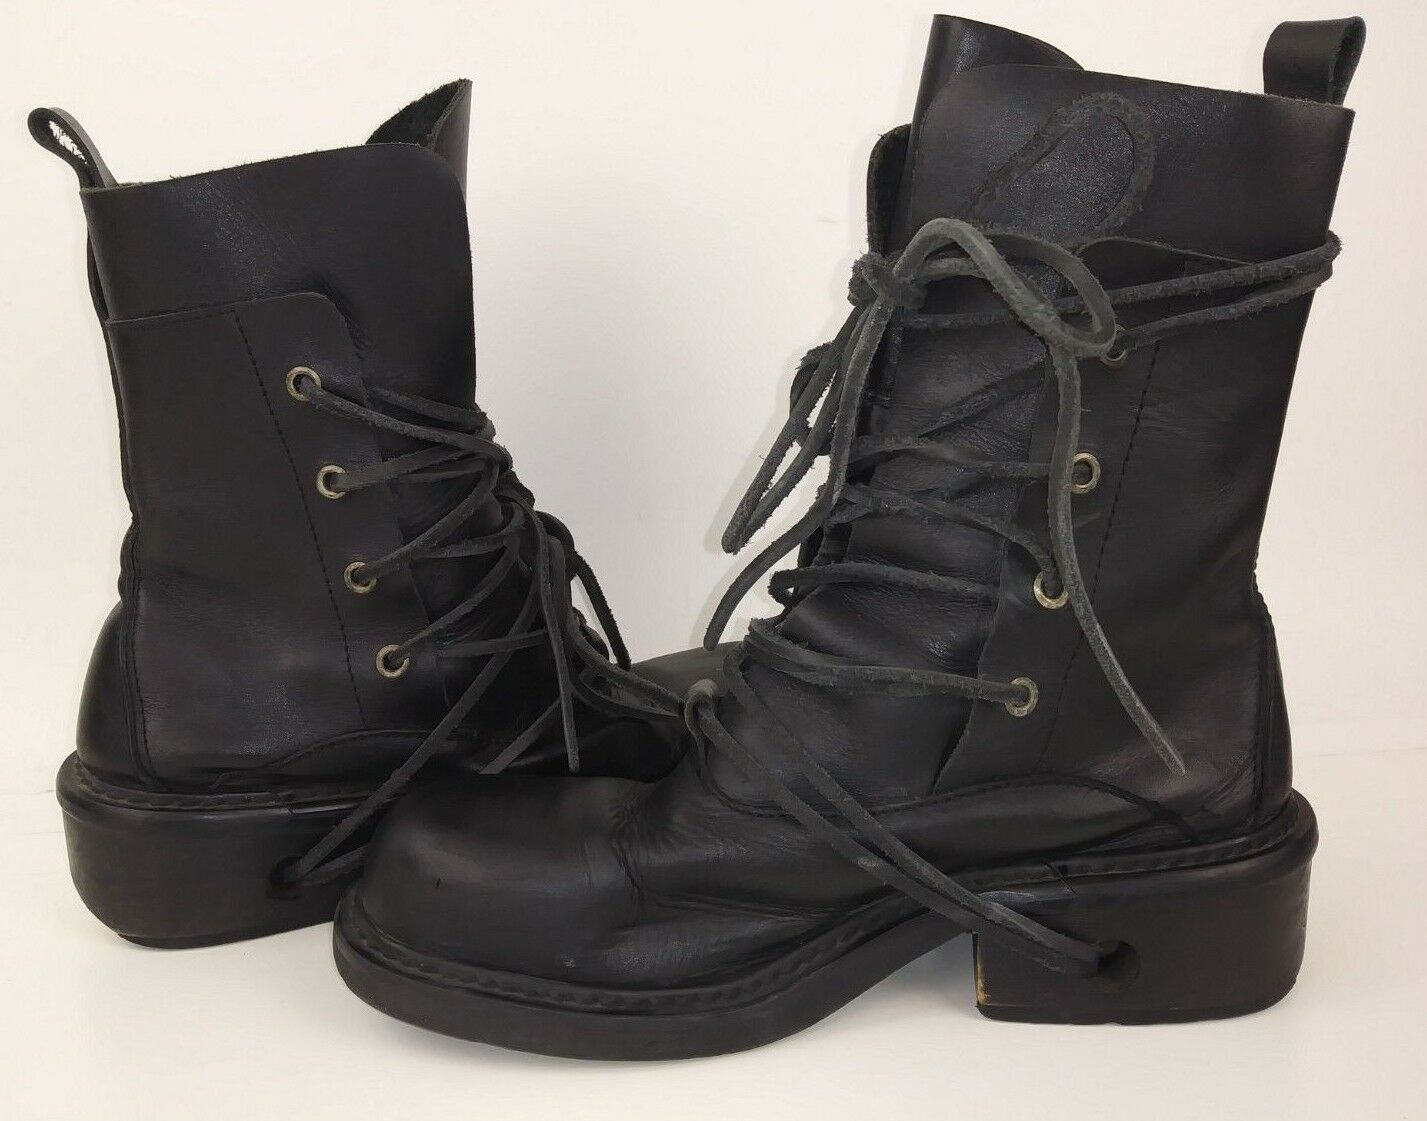 Epox Boots EU 38 US 8 Black Leather Handcrafted Steampunk lace up 1558